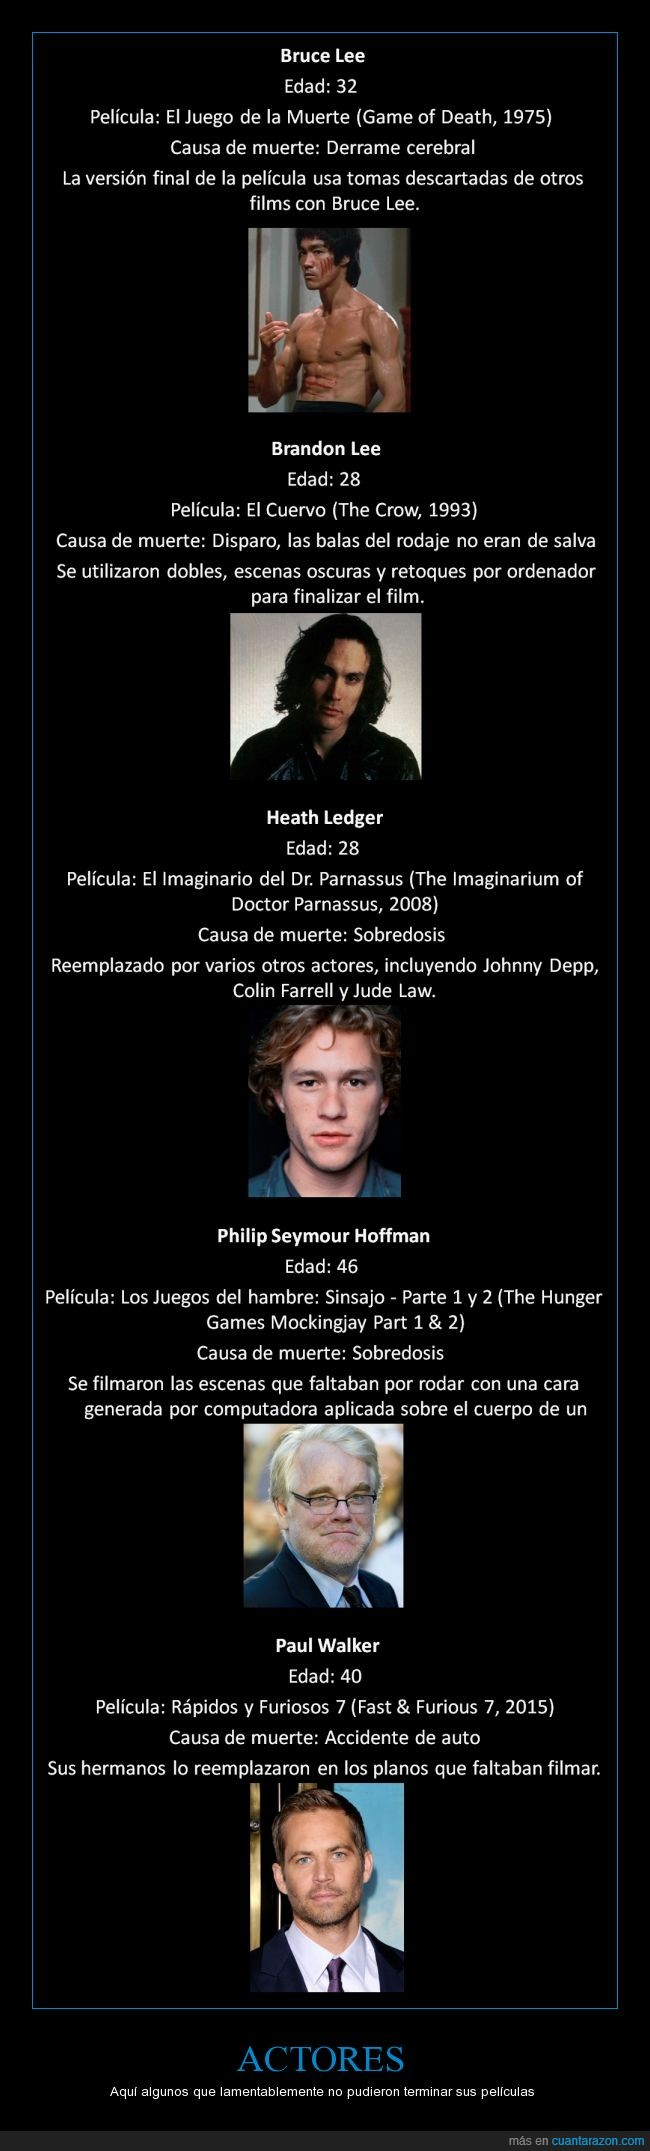 actores,brandon lee,bruce lee,fallecidos,heath ledger,paul walker,peliculas sin terminar,philip seymour hoffman